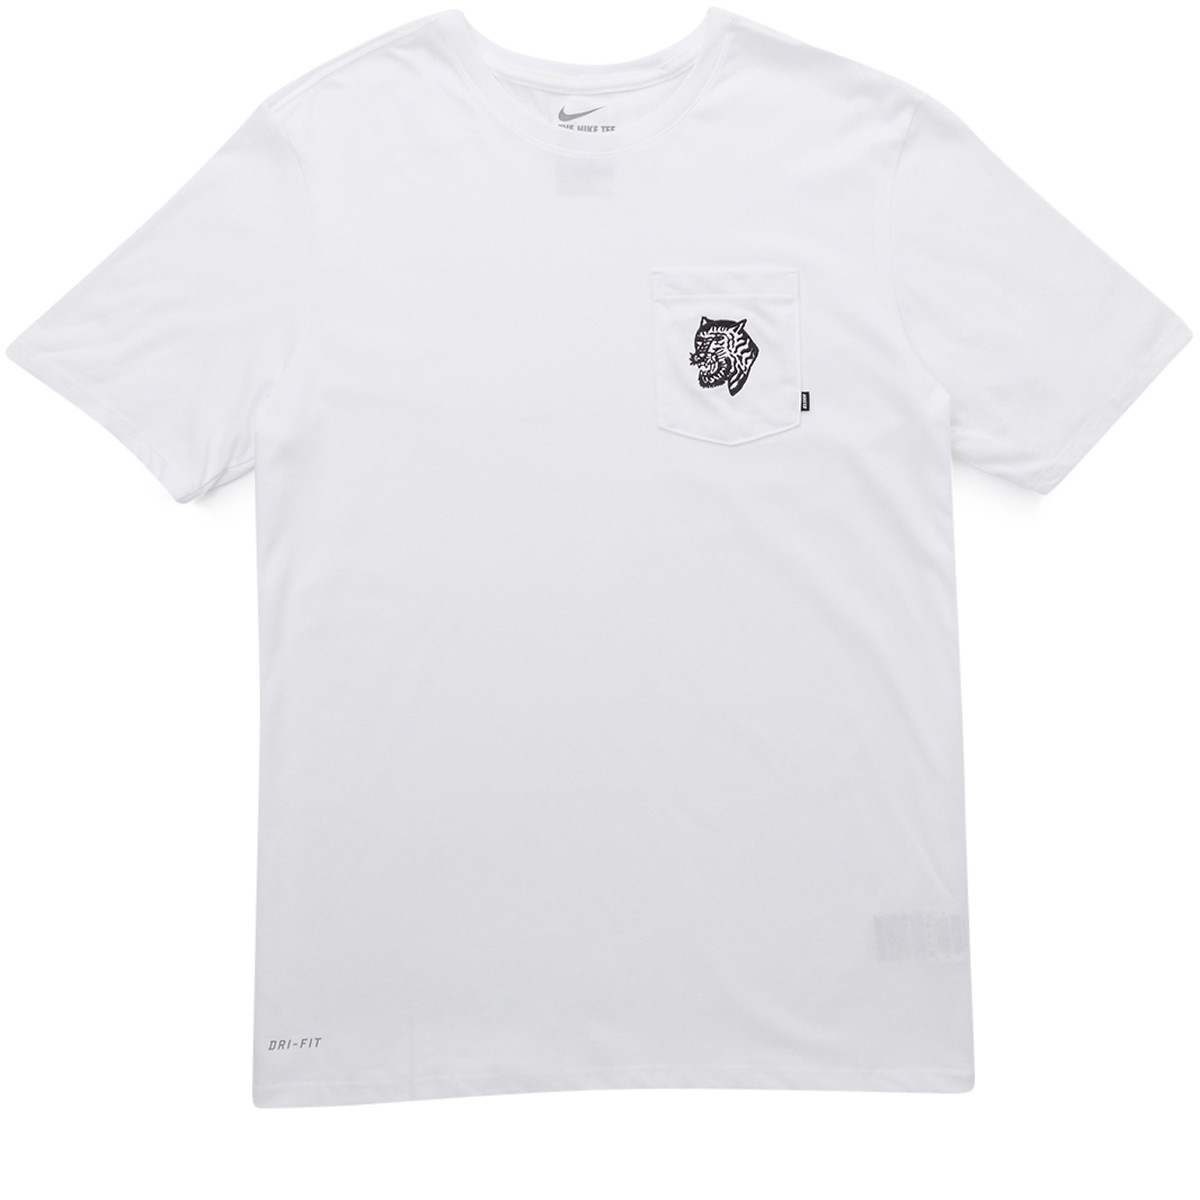 cf16cfc4 Nike SB Tiger Pocket T-Shirt - White/White/Black